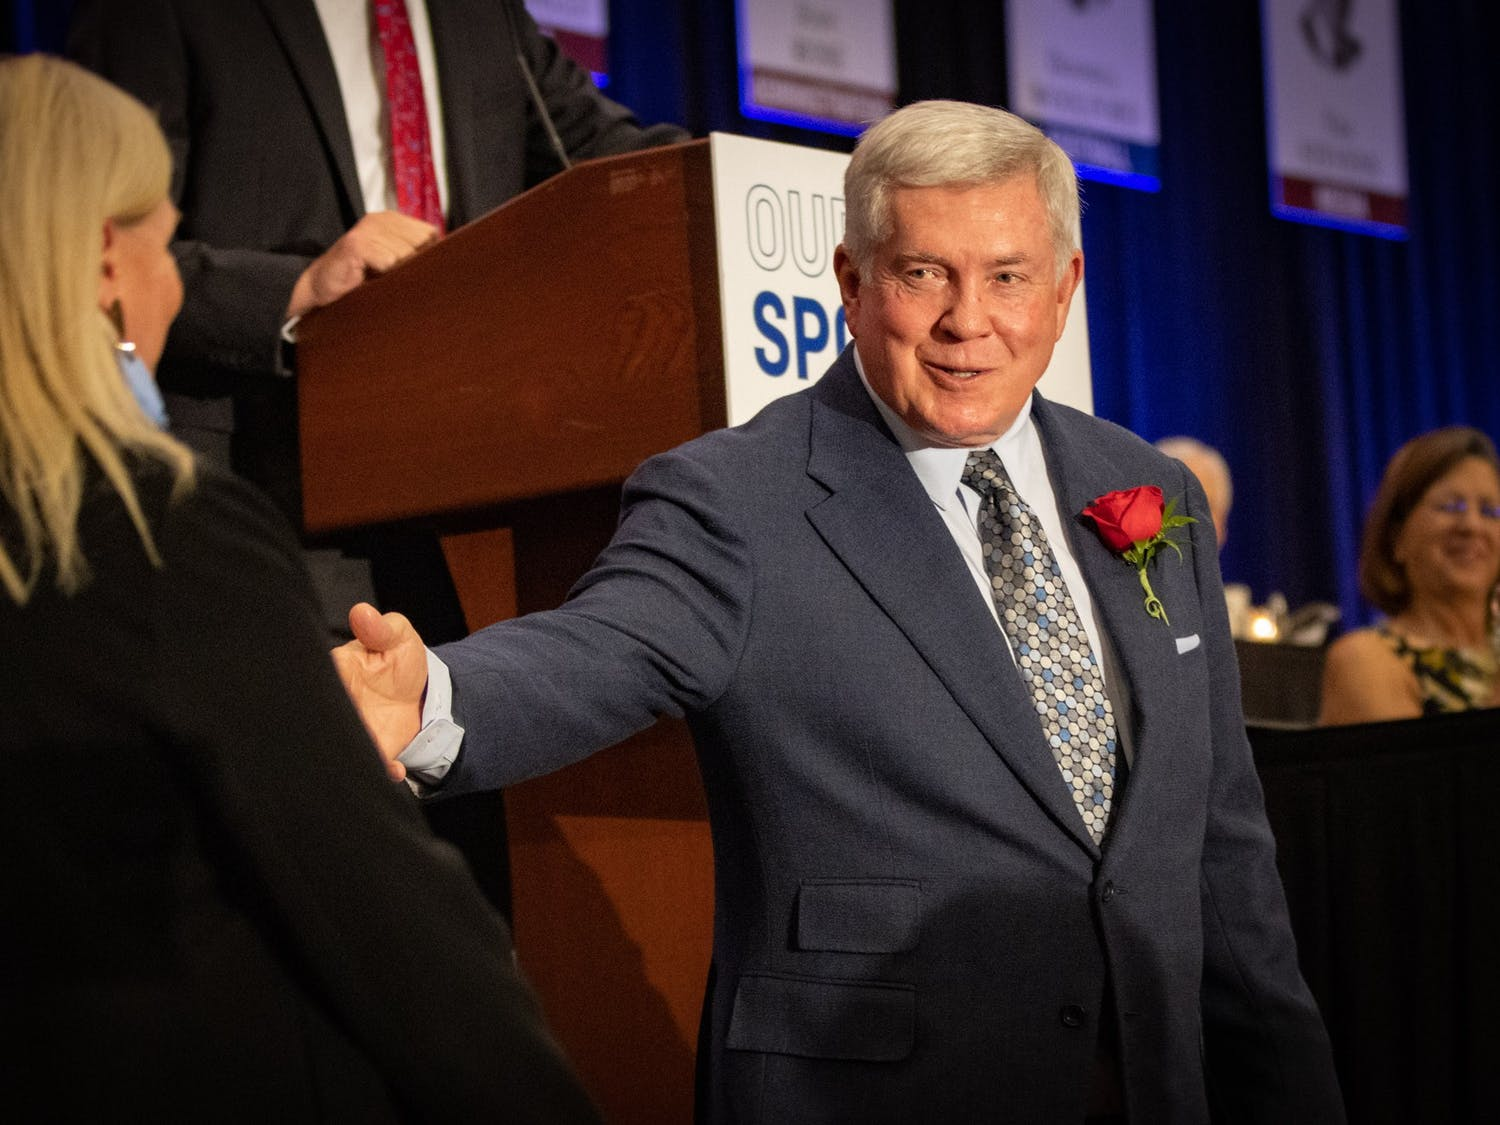 Inductee Mack Brown waves his wife over as he is introduced at the North Carolina Sports Hall of Fame induction ceremony Friday.